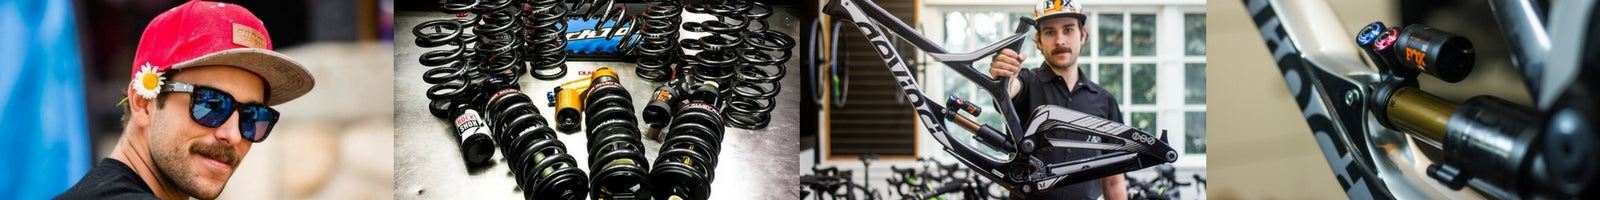 Suspension Services Available at Dunbar Cycles - Visit Us Online